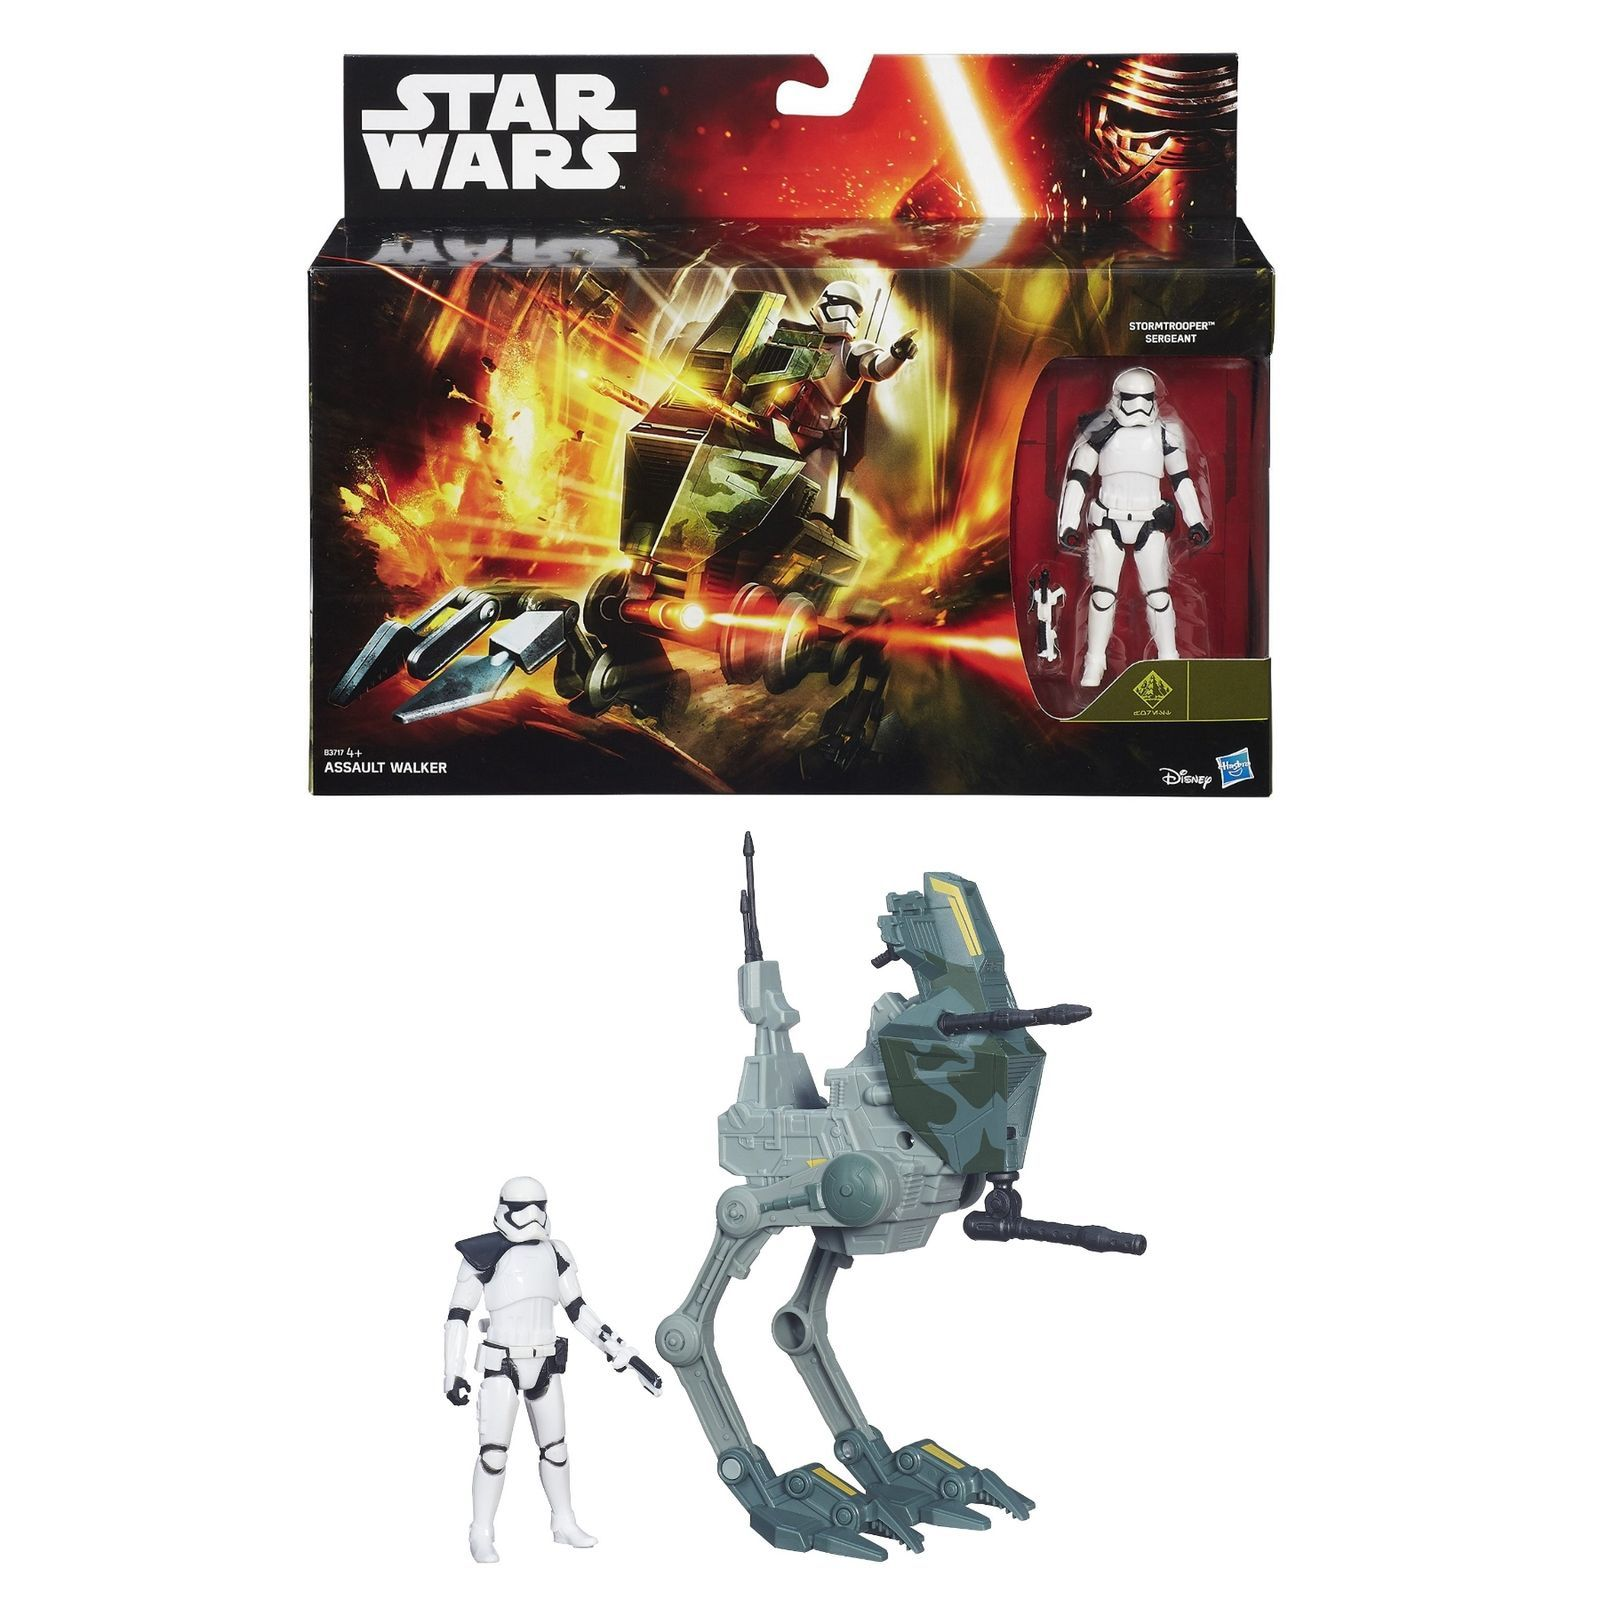 Star Wars The Force Awakens Assault Walker Vehicle Toy With 3.75inch Figure 2015